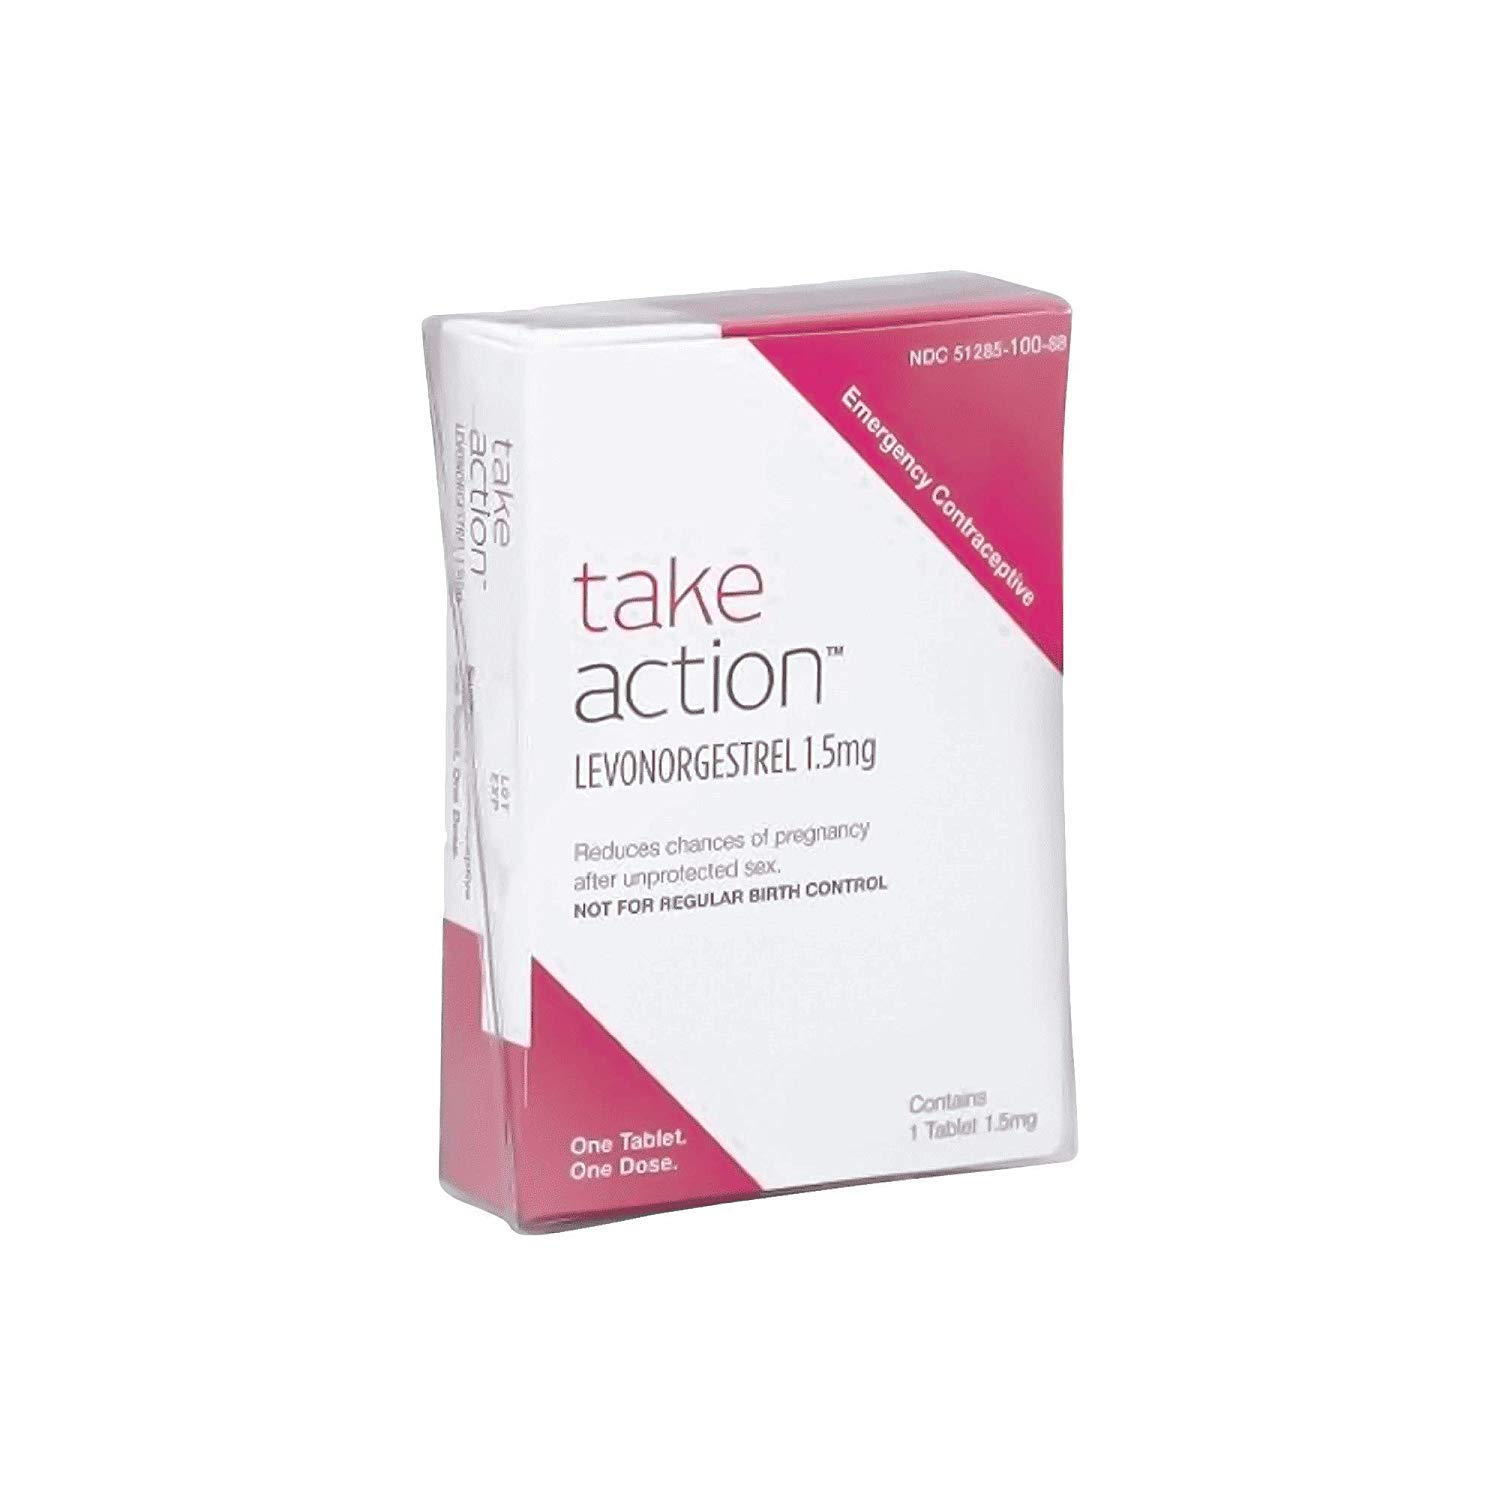 Take Action Emergency Contraceptive , Levonorgestrel 1.5mg by TAKE ACTION!